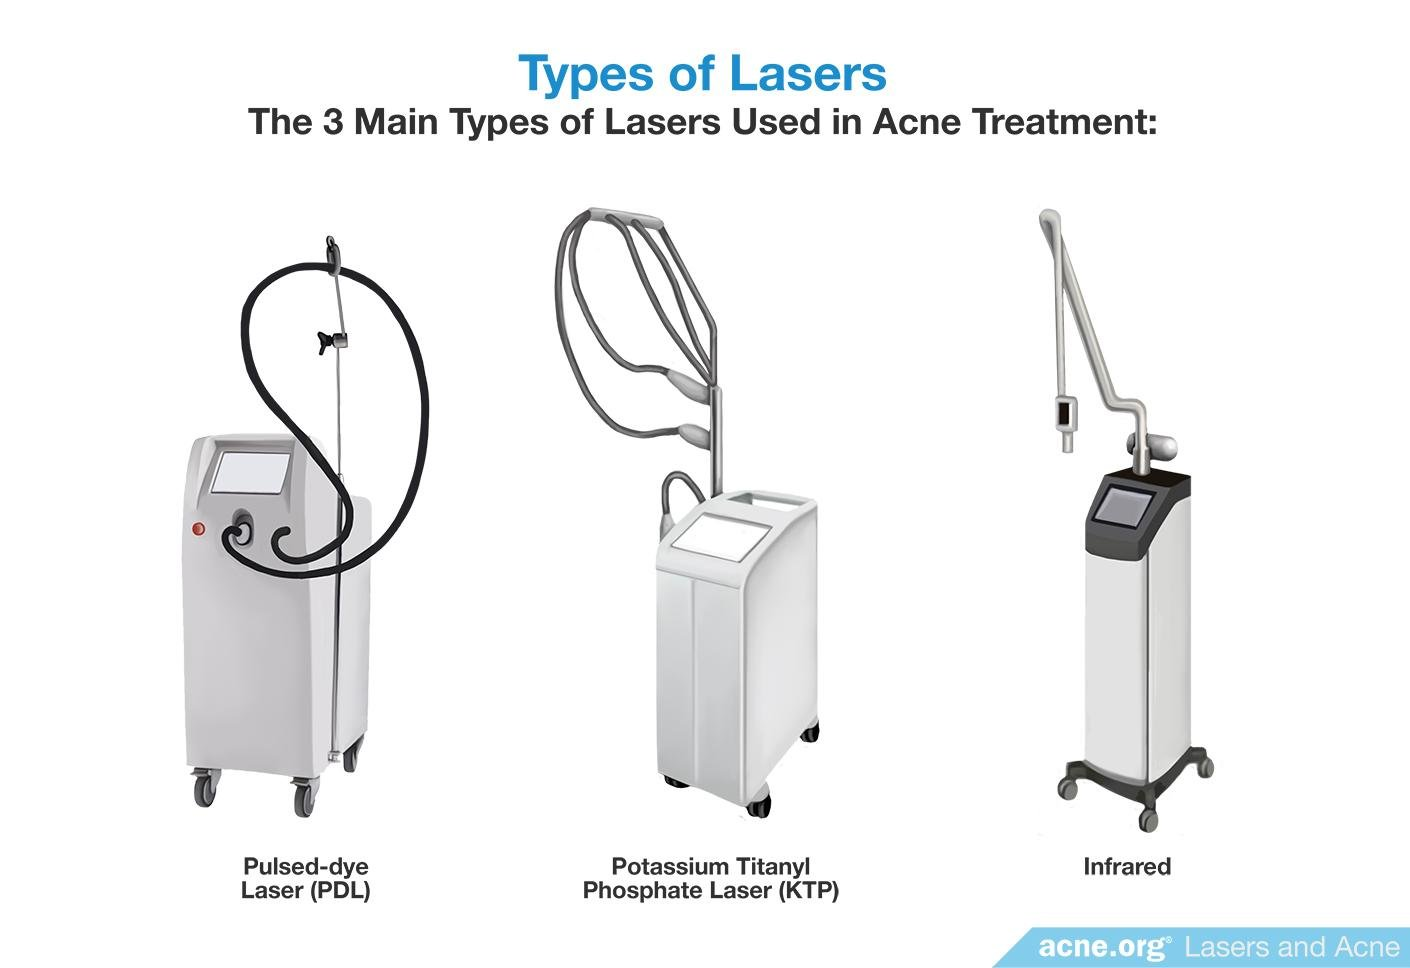 Types of Lasers